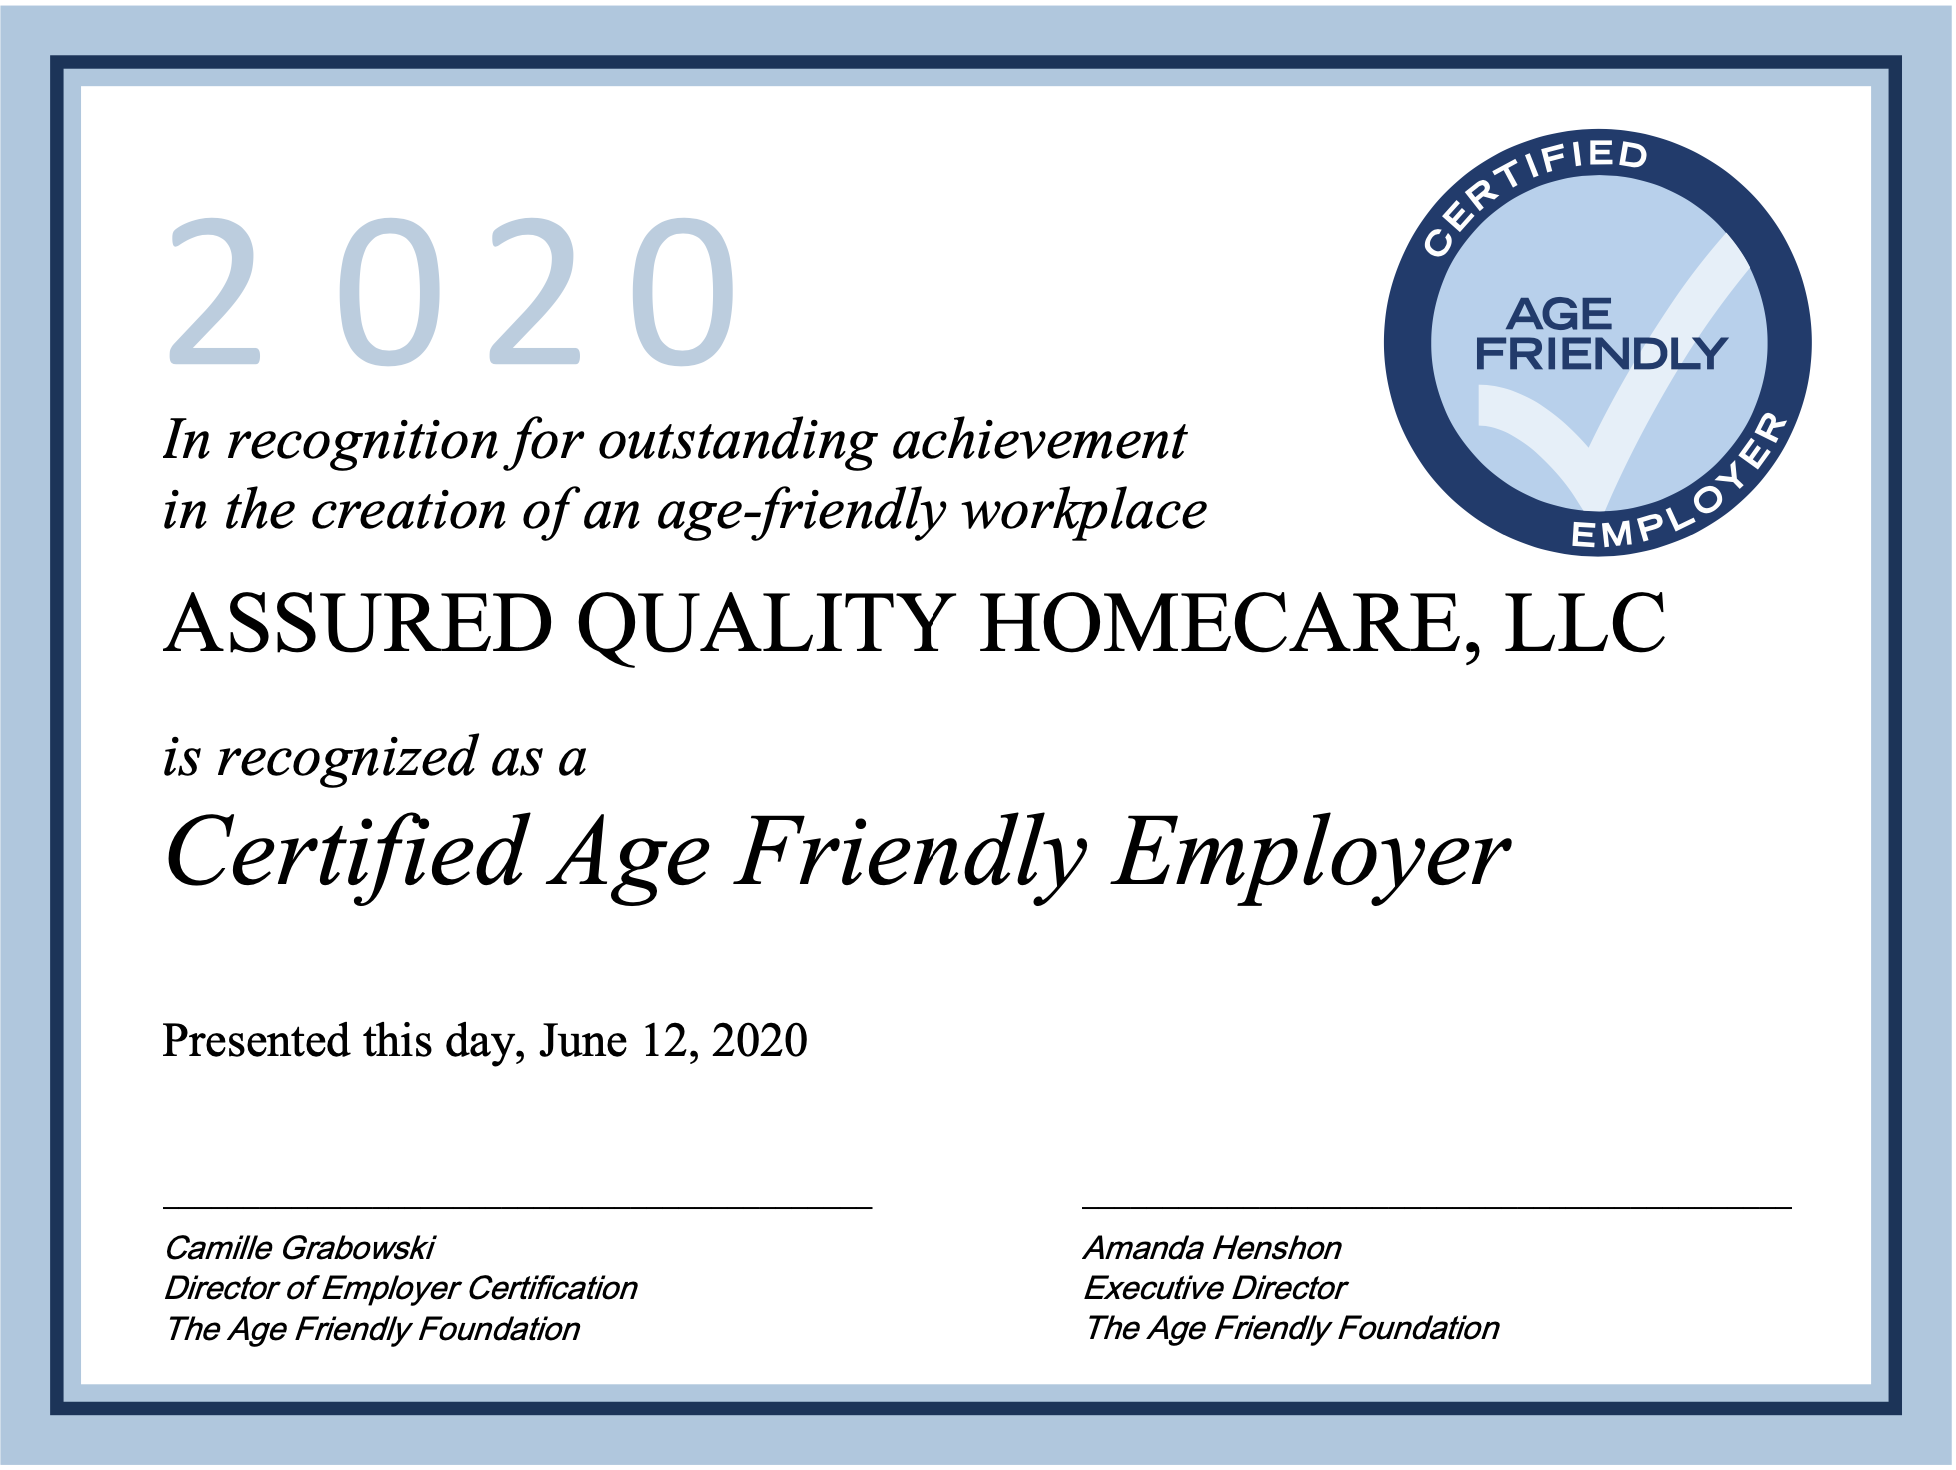 Assured Quality Homecare Recognized as a Certified Age Friendly Employer